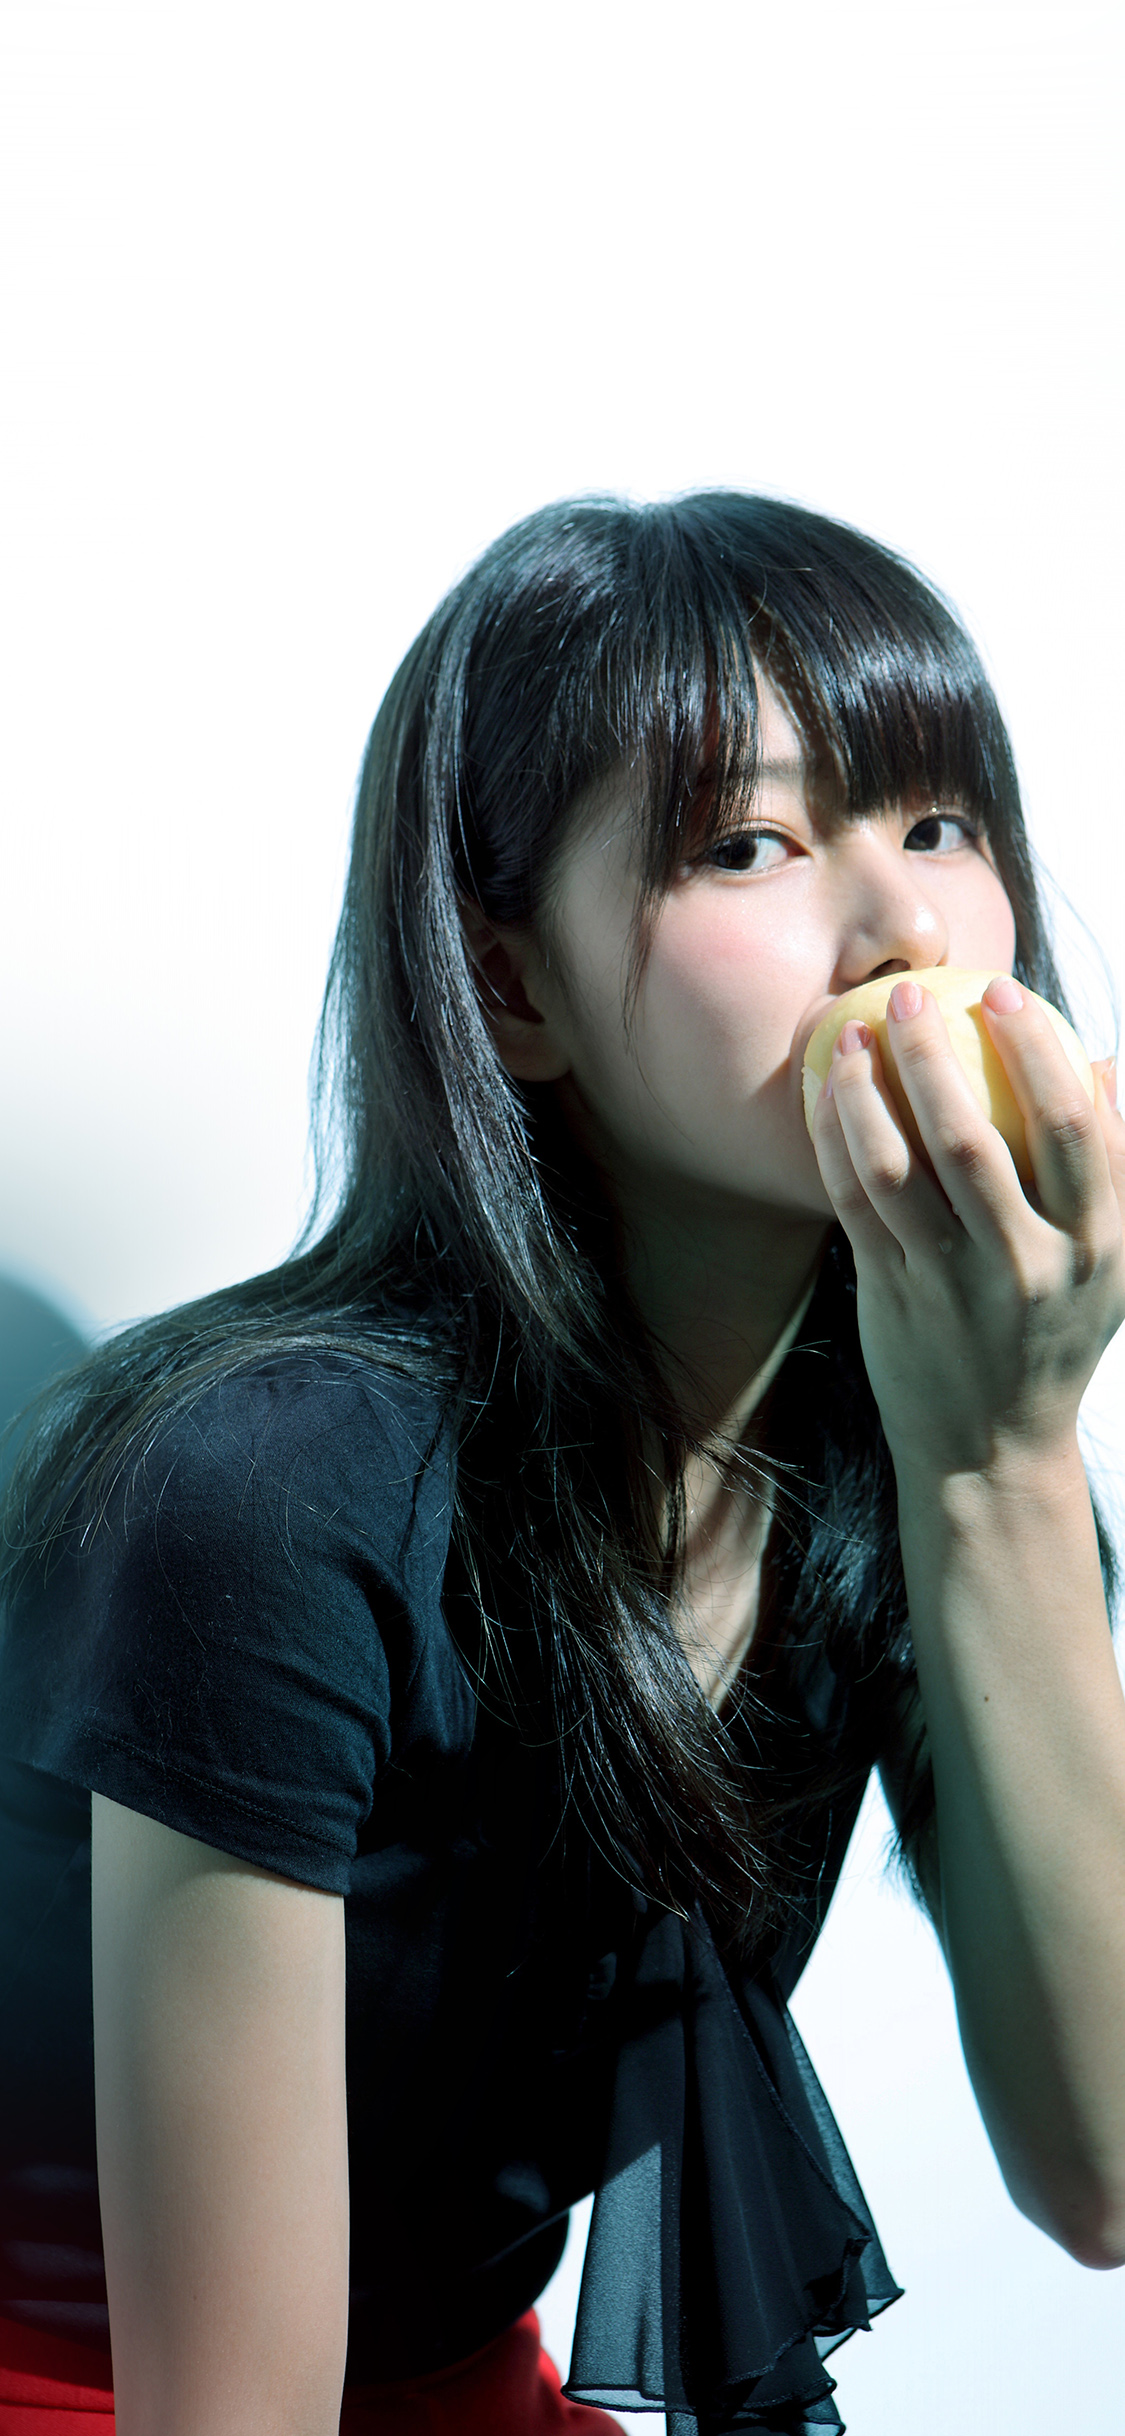 iPhoneXpapers.com-Apple-iPhone-wallpaper-hl60-girl-asian-eating-apple-cute